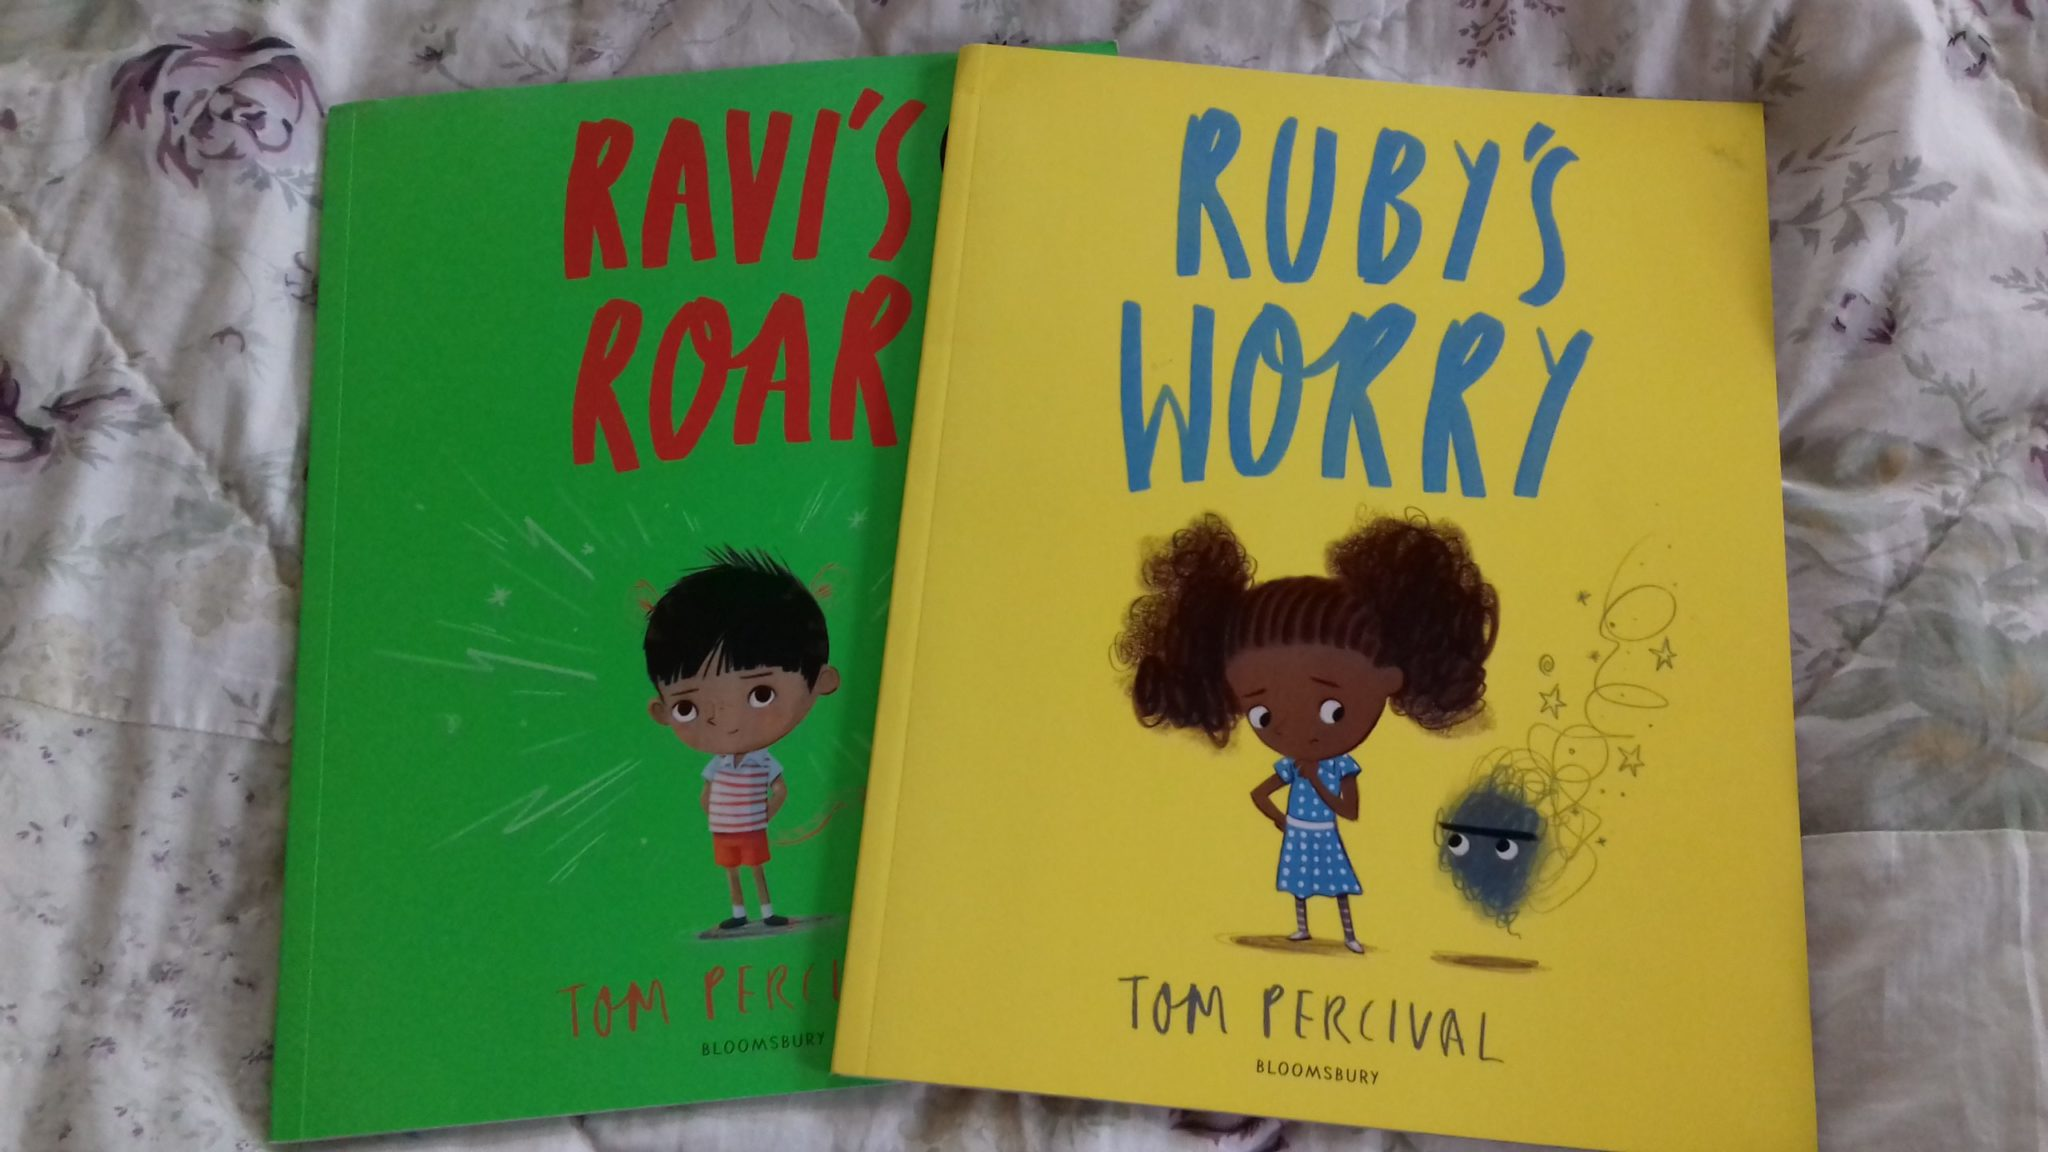 Ravi's Roar (Tom Percival) and Ruby's Worry (Tom Percival) - Looking for multicultural books for your children? This list features 25+ of the best diversity books about race and culture for the kids in your family or your classroom.